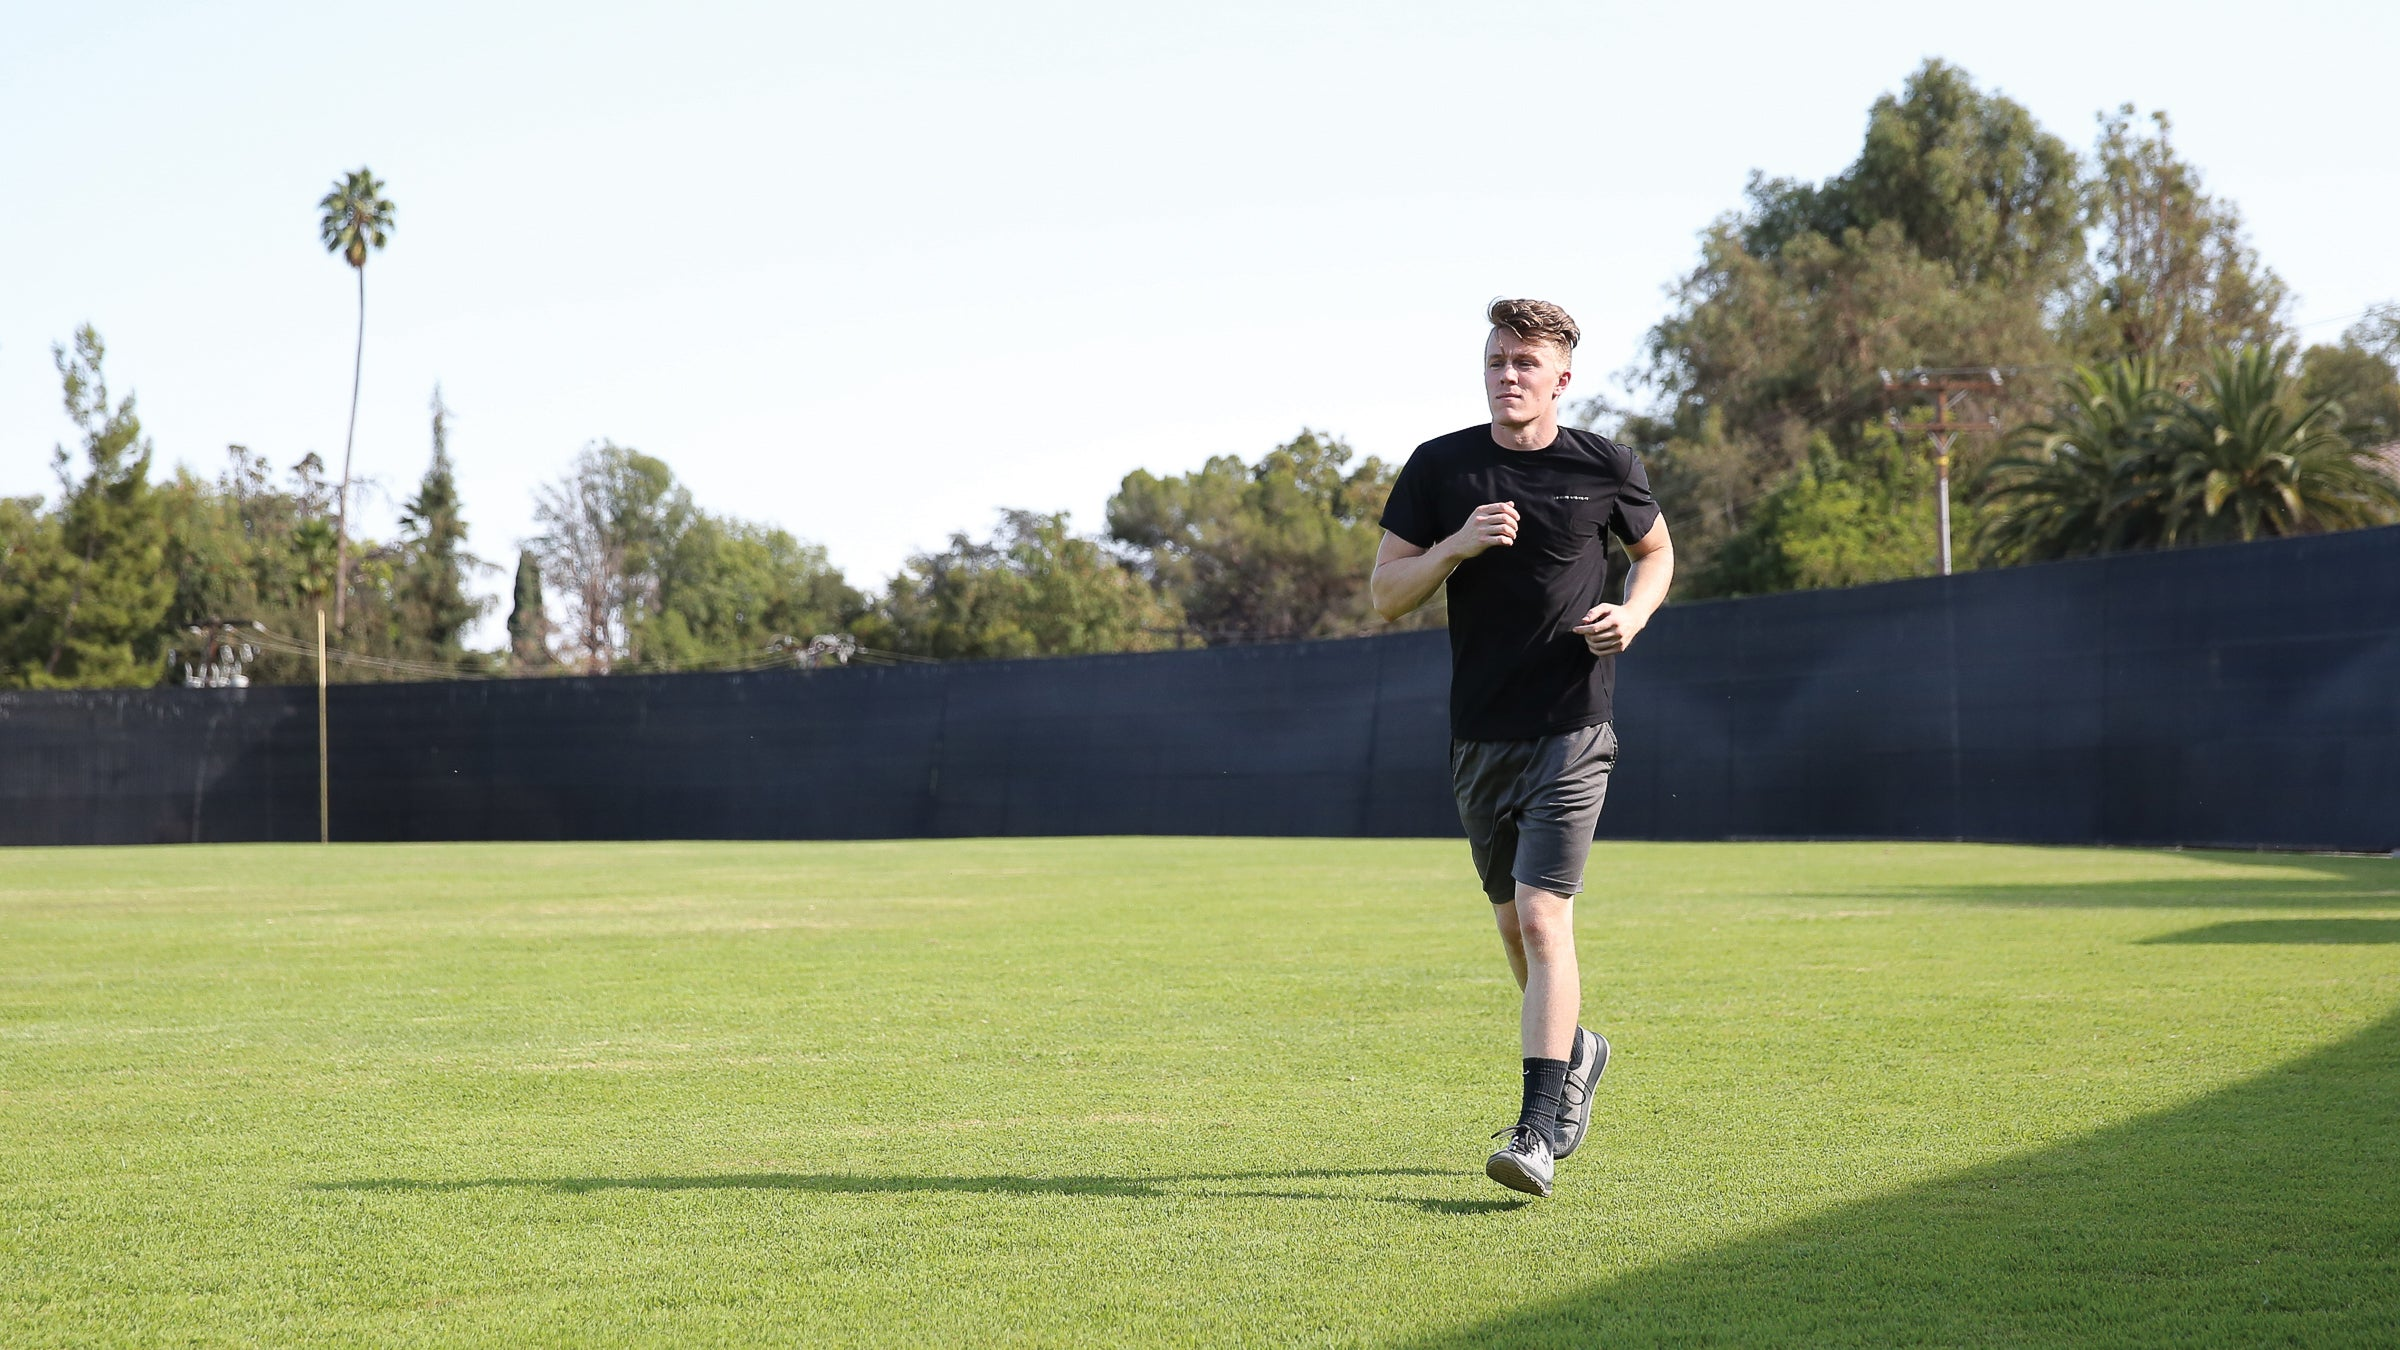 Man jogging on grassy turf